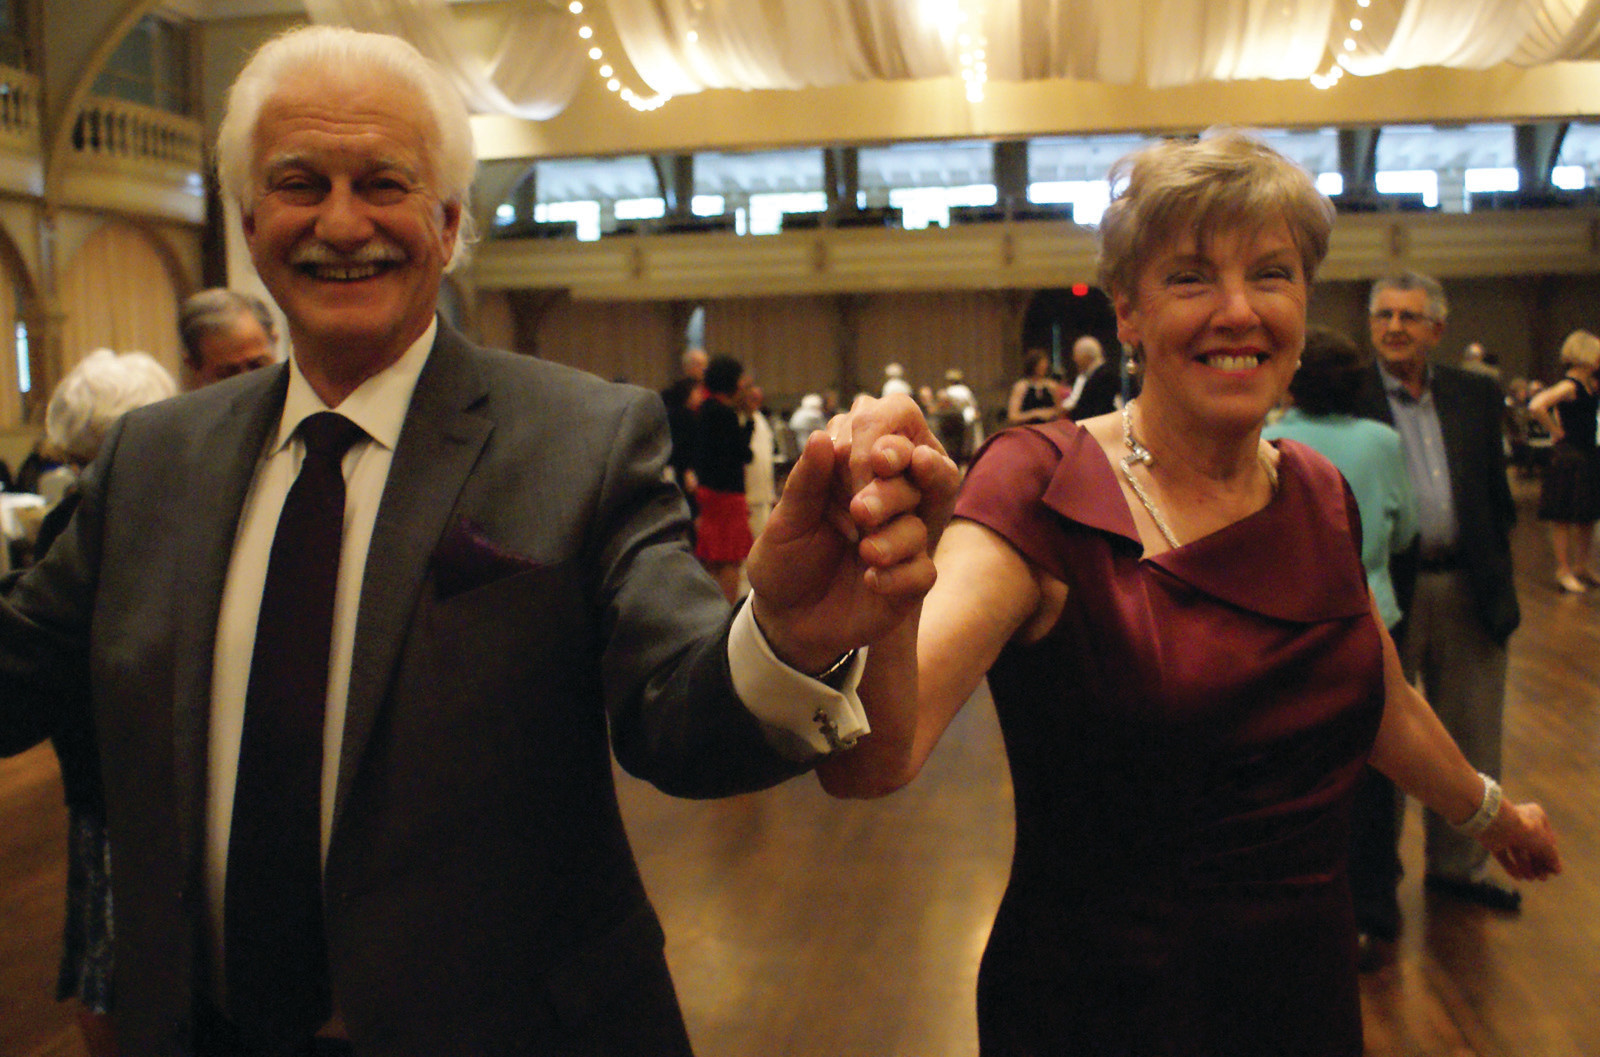 CHA CHA: Dancing the night away at the Spring Edition of the Cavalcade of Bands and doing the Cha Cha are Bob DiDomenico and Gail Palmer.